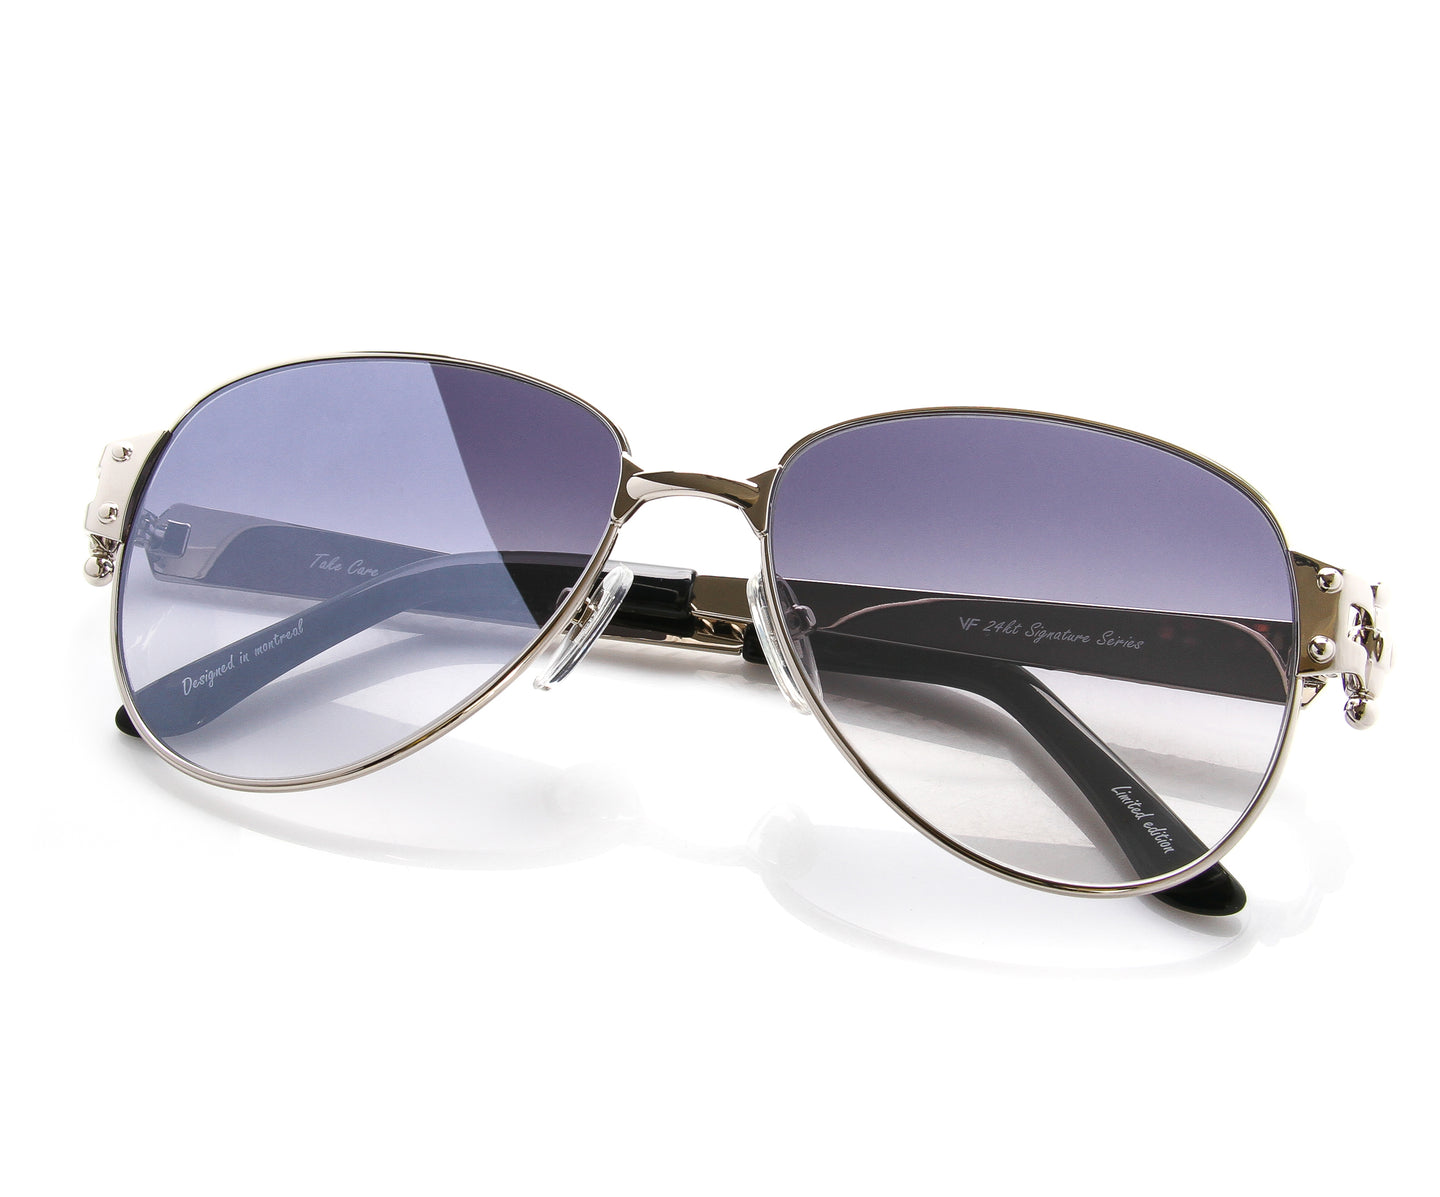 VF 2001 24KT White Gold Masterpiece (Gray Flash Blue), VF Masterpiece , glasses frames, eyeglasses online, eyeglass frames, mens glasses, womens glasses, buy glasses online, designer eyeglasses, vintage sunglasses, retro sunglasses, vintage glasses, sunglass, eyeglass, glasses, lens, vintage frames company, vf